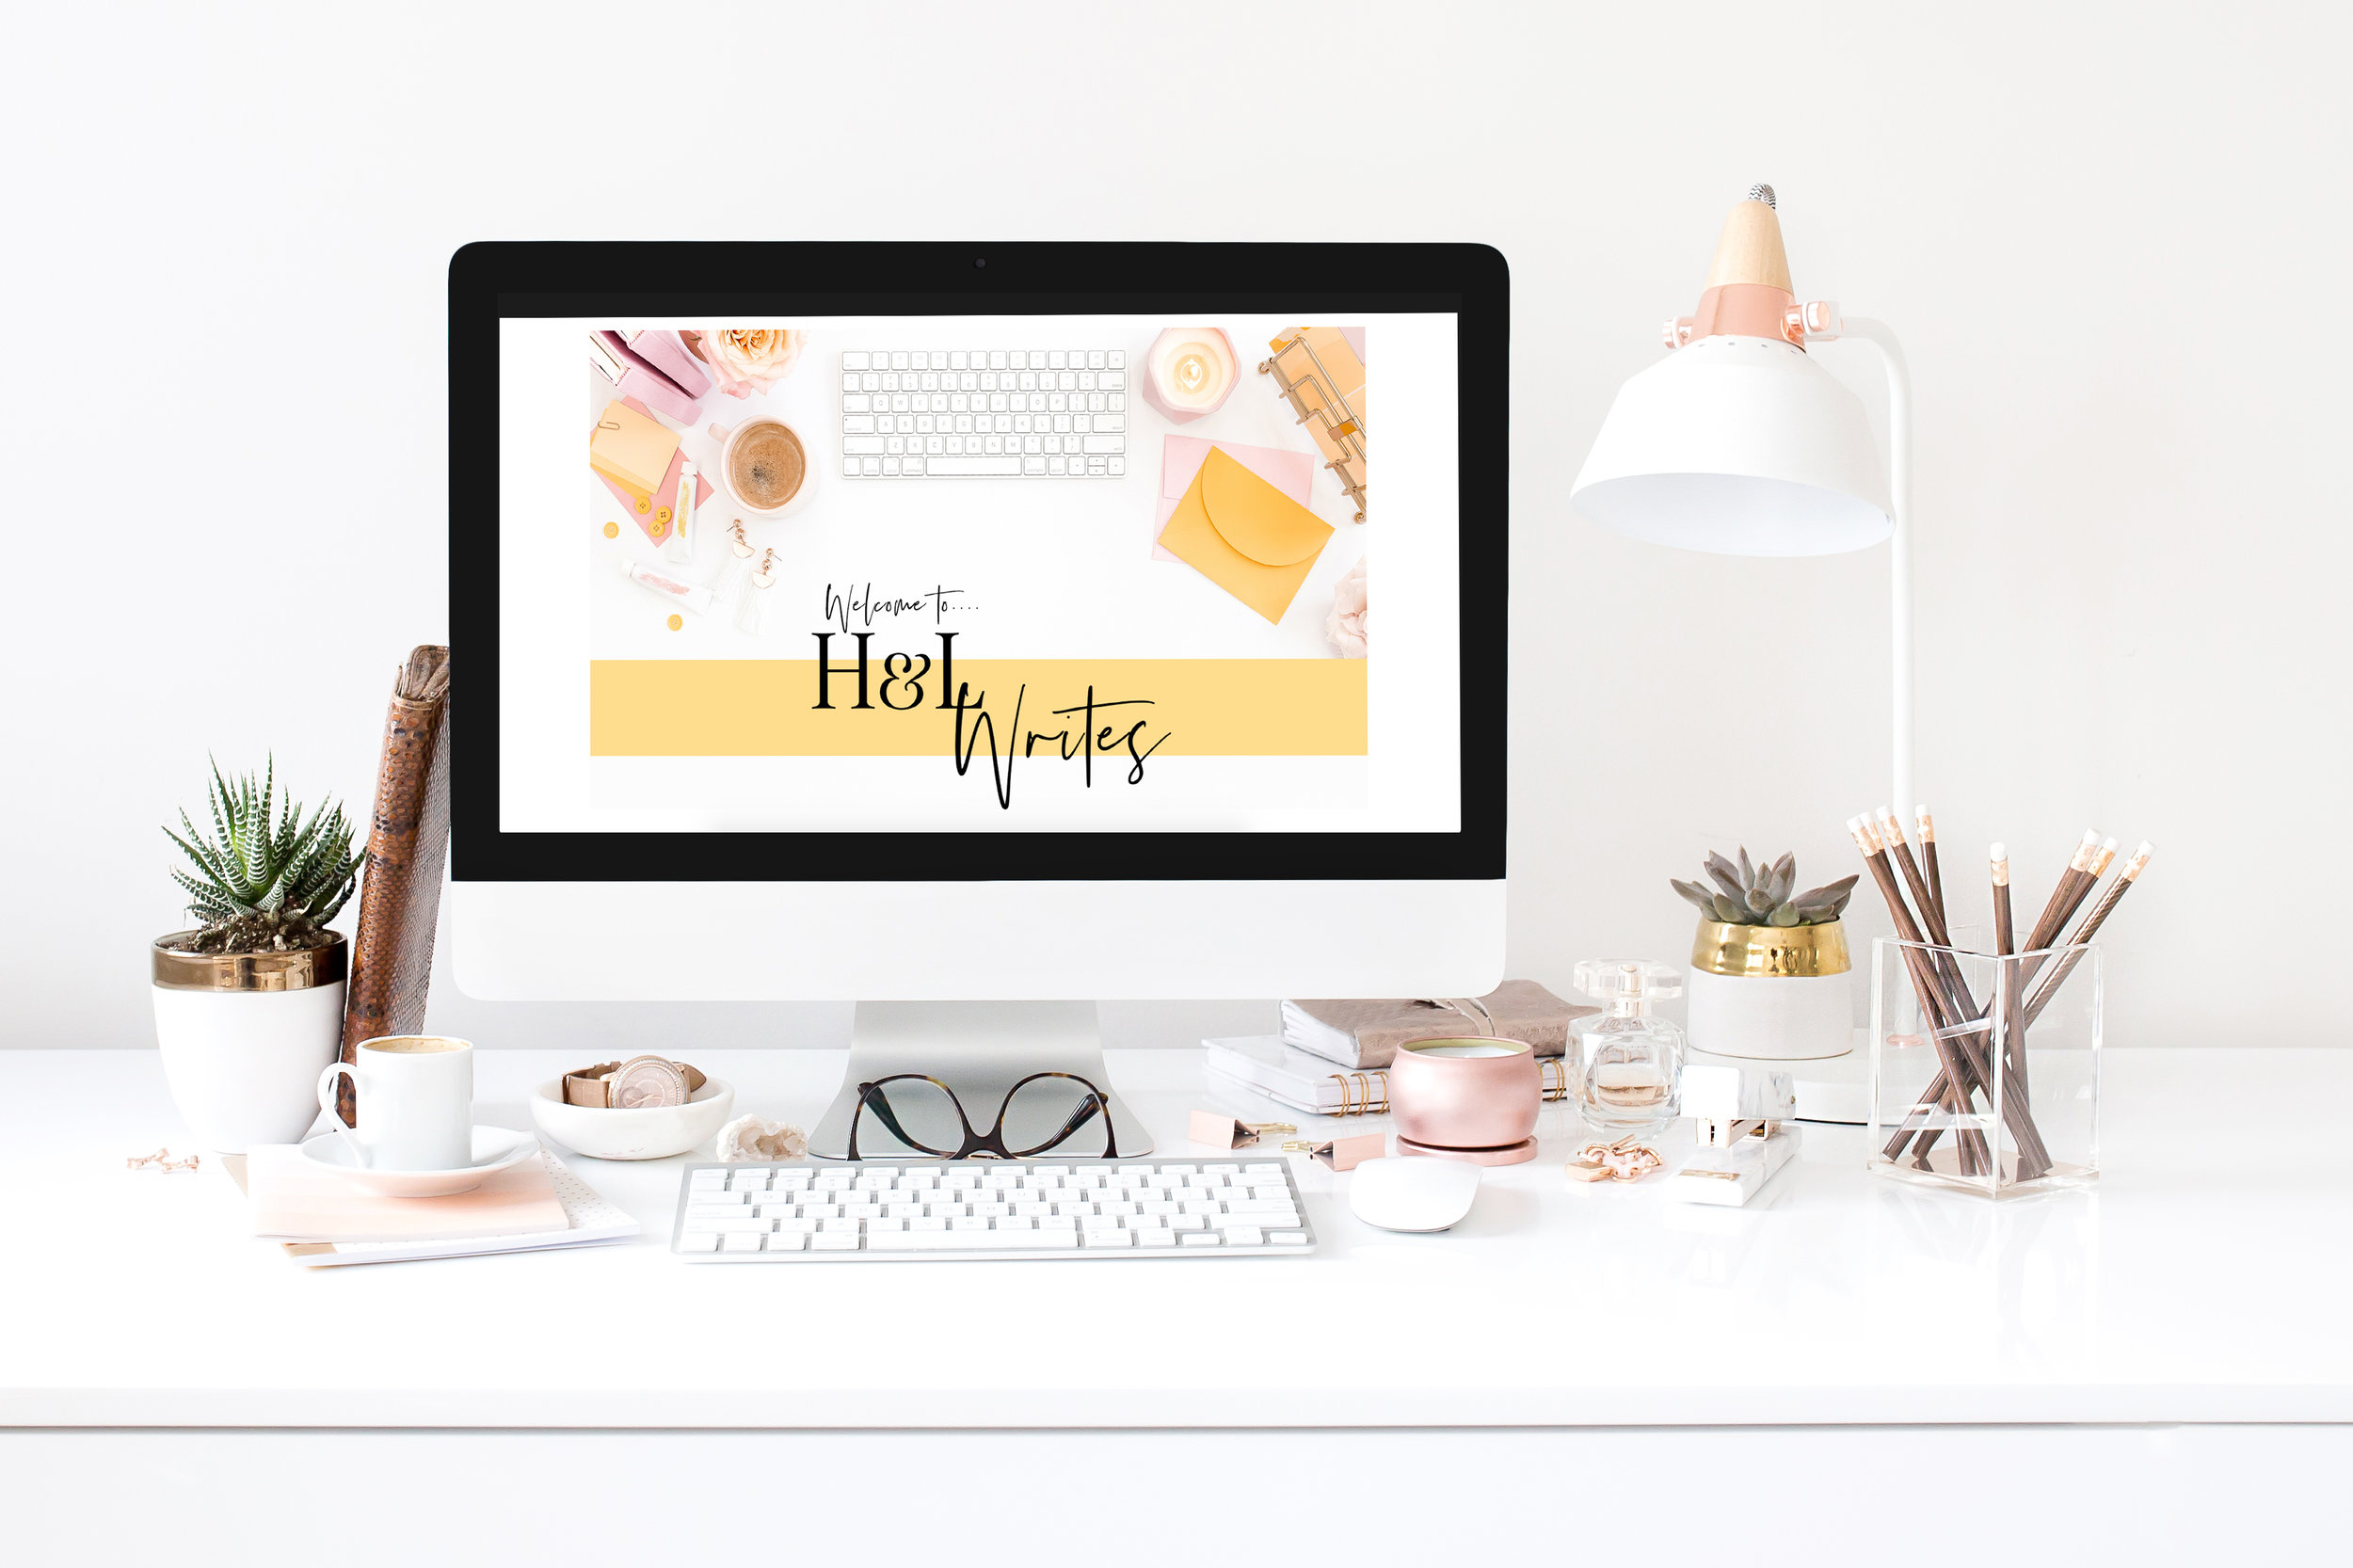 A monthly membership for writers with writing prompts and writing exercises and writing opportunities to get published. H&L Writes.